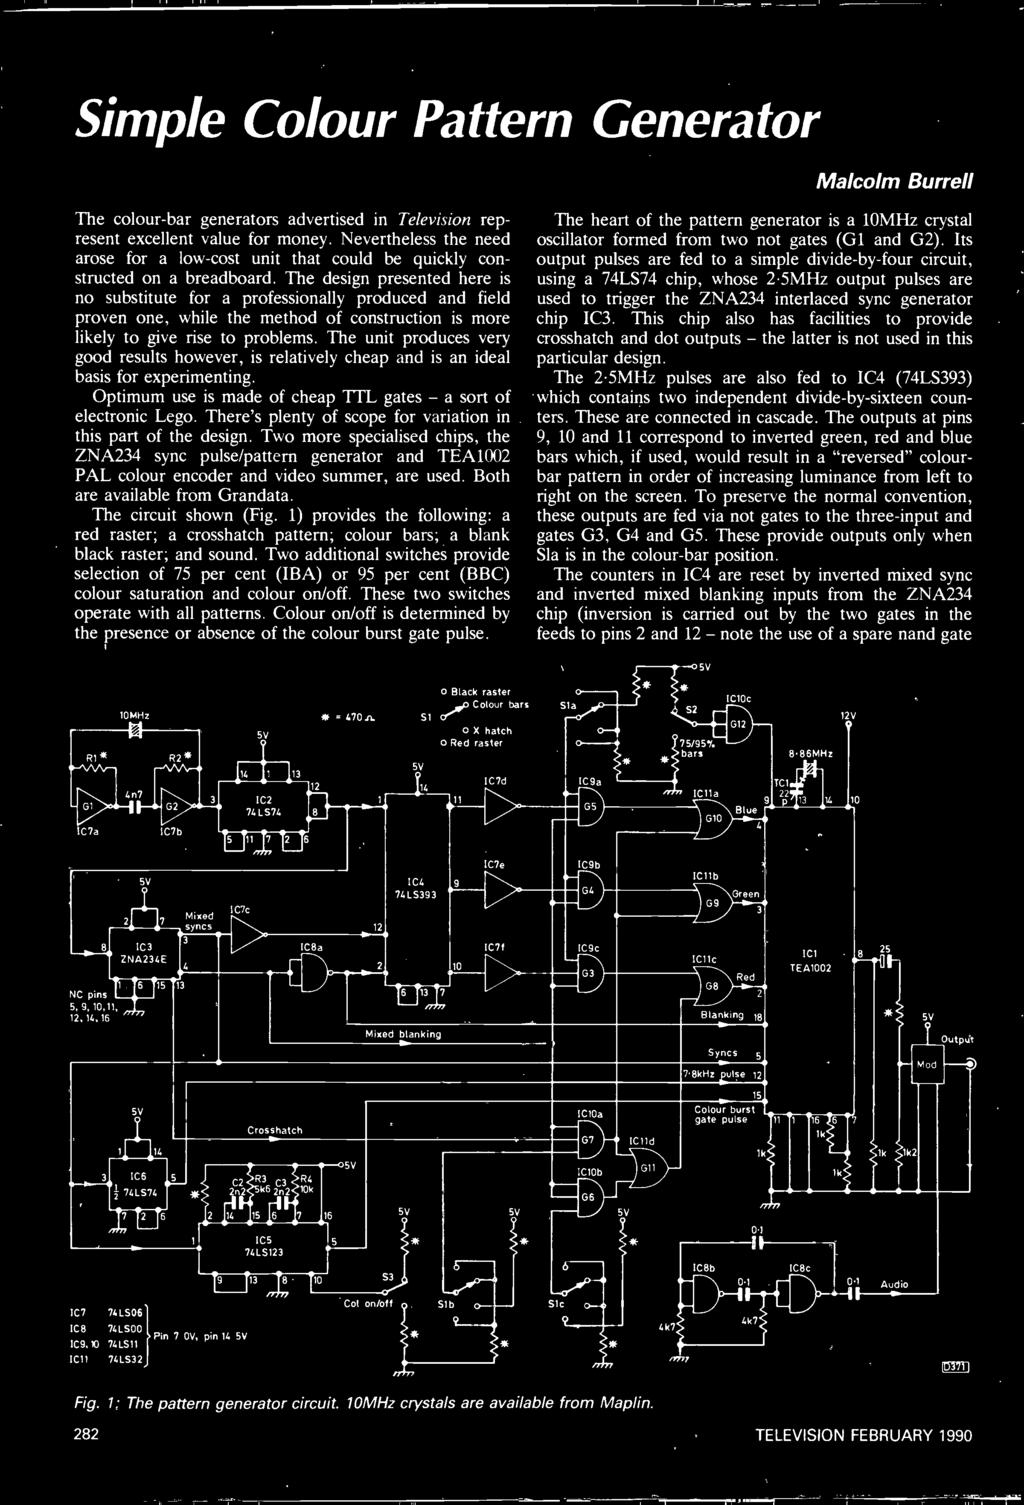 Free Transistor Pack Plus Pdf Wiring Diagram 22 Pin Walkman Theres Plenty Of Scope For Variation In This Part The Design Two More Specialised